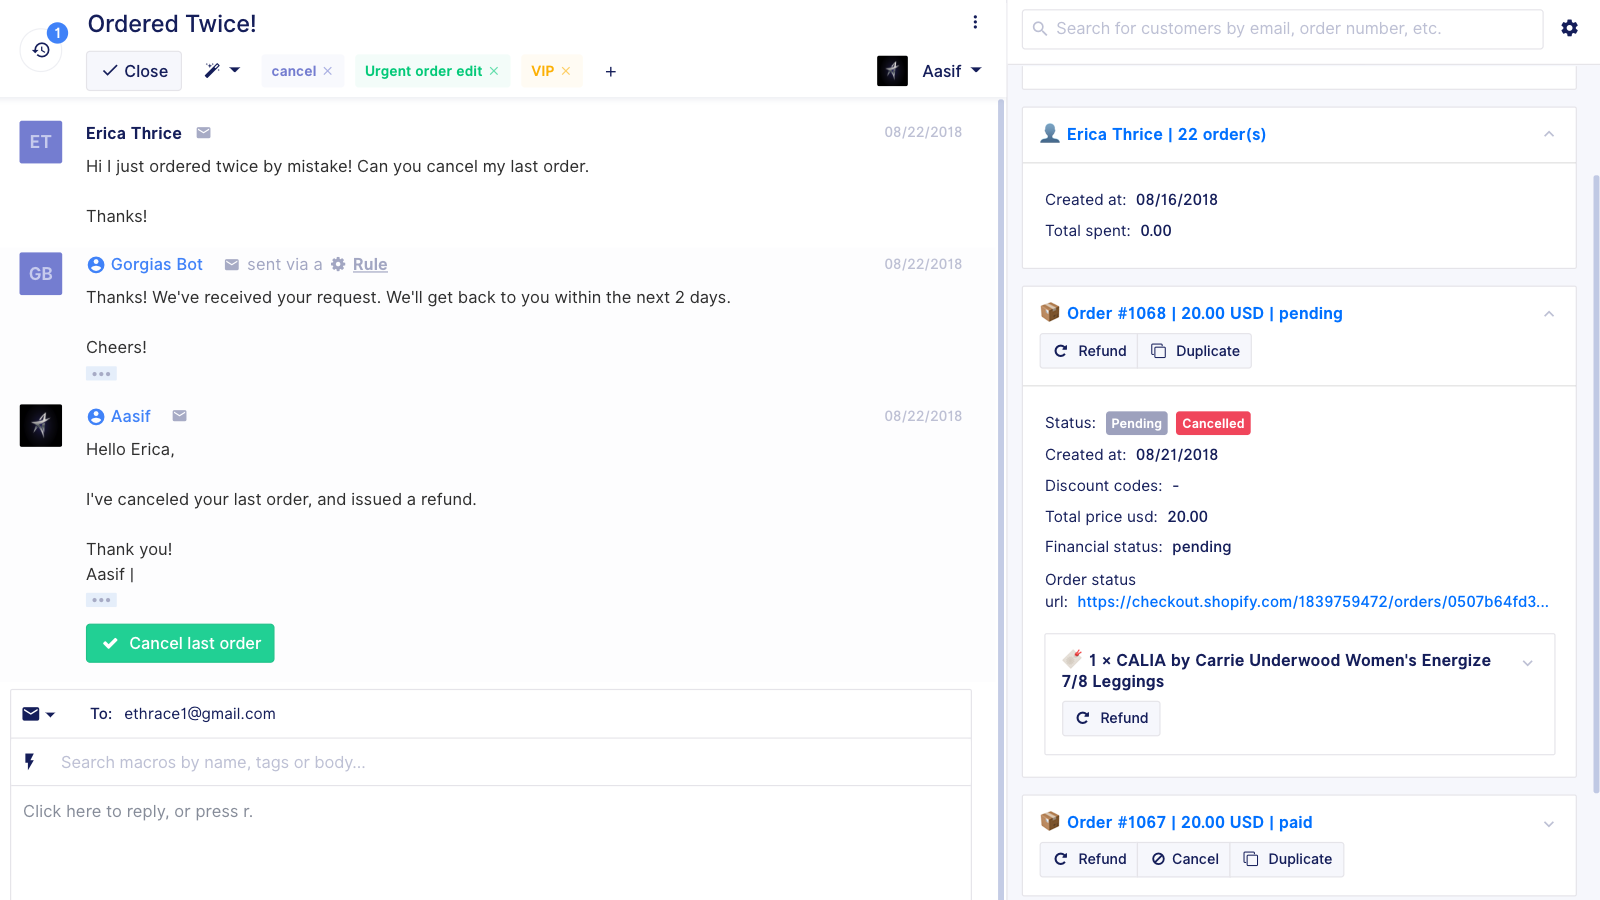 See the complete customer support history from live chat, email